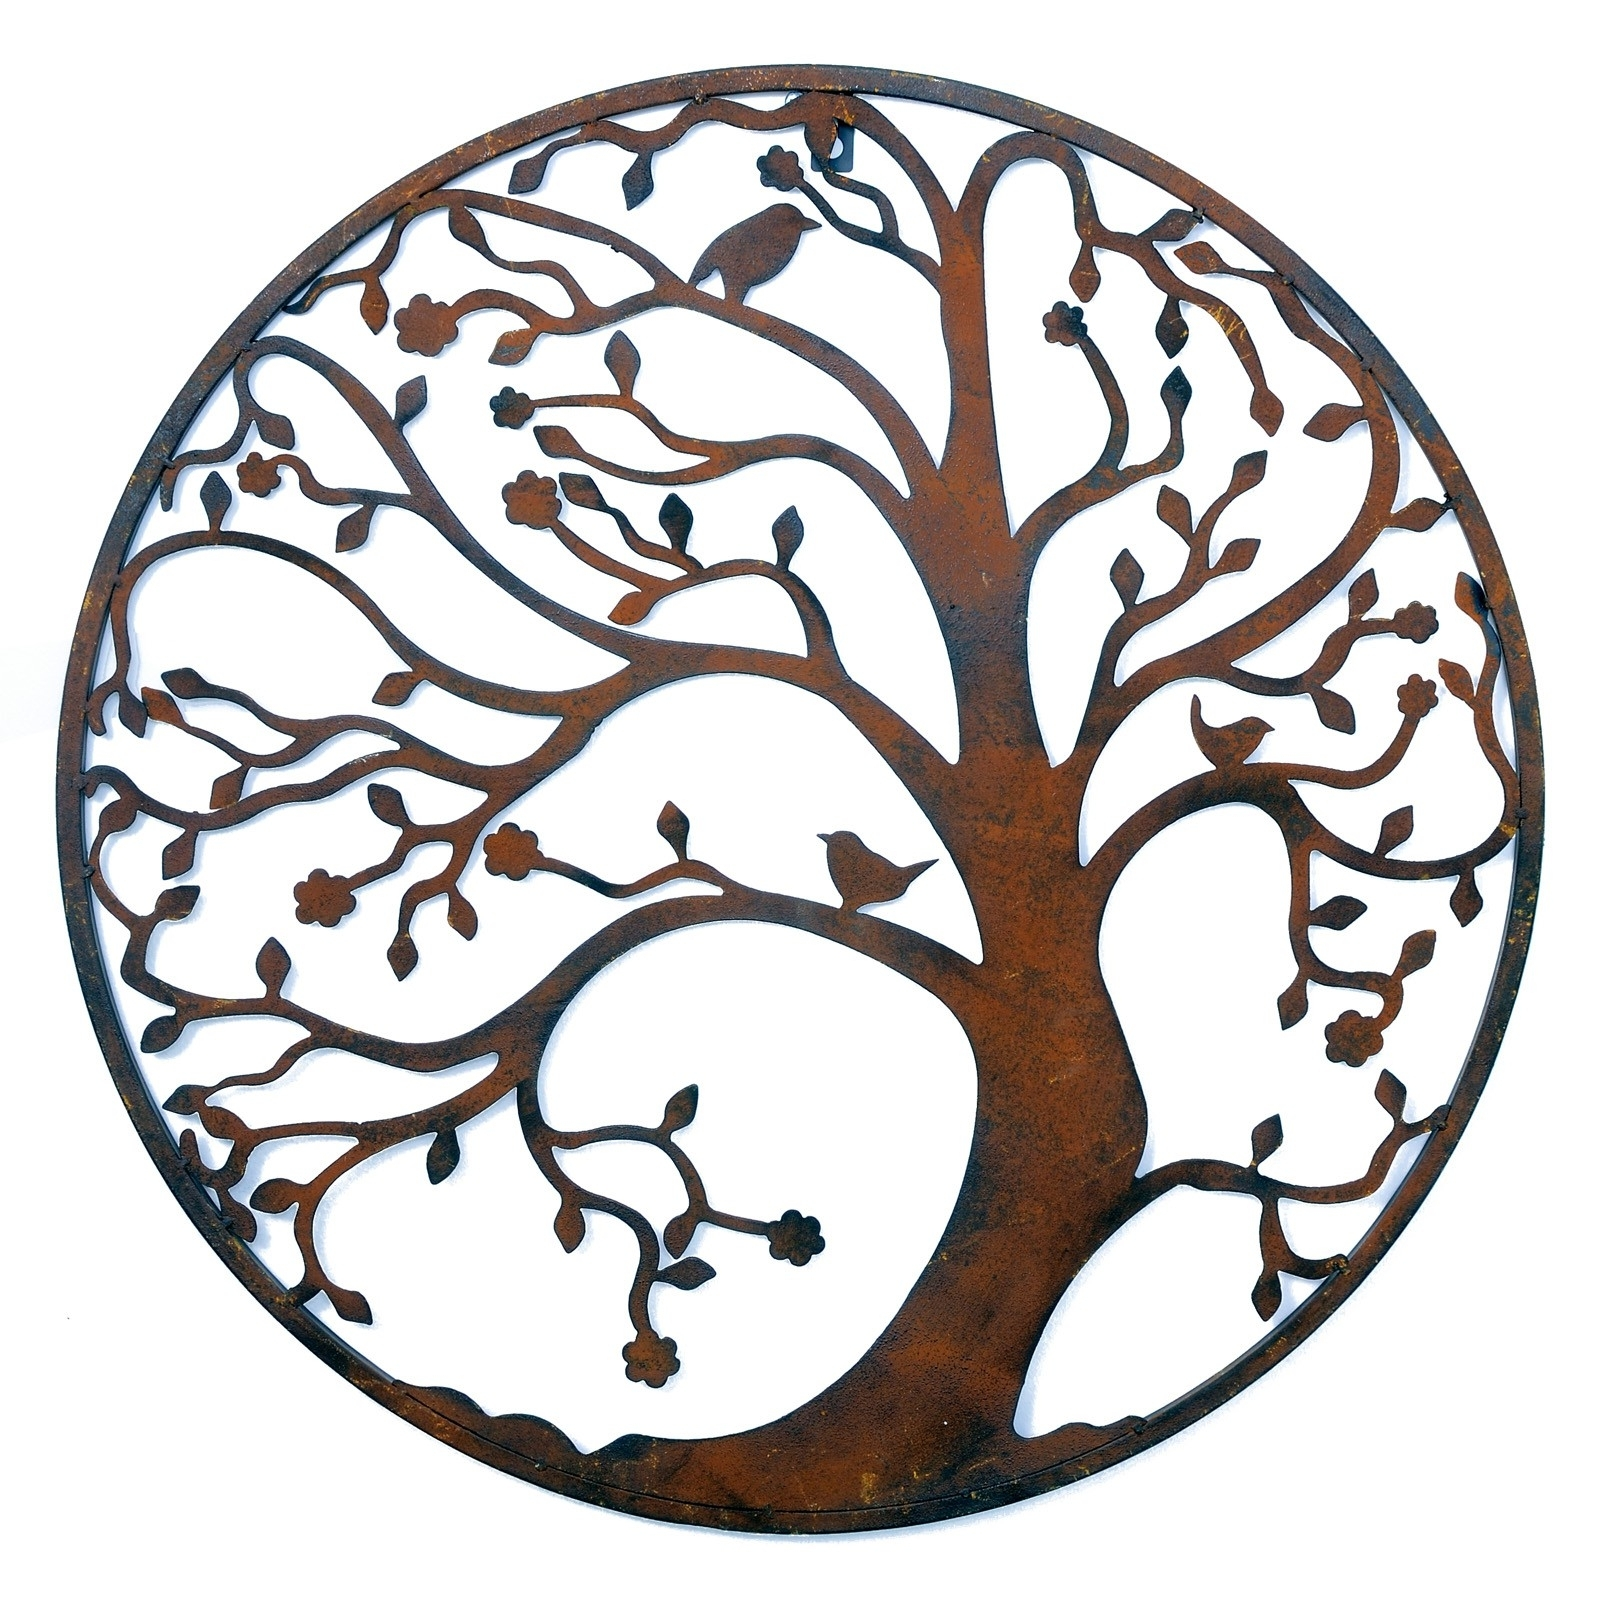 Wall Art Designs: Rusted Classic Design Tree Leaf Branch Birds In Most Current Large Round Metal Wall Art (View 13 of 15)